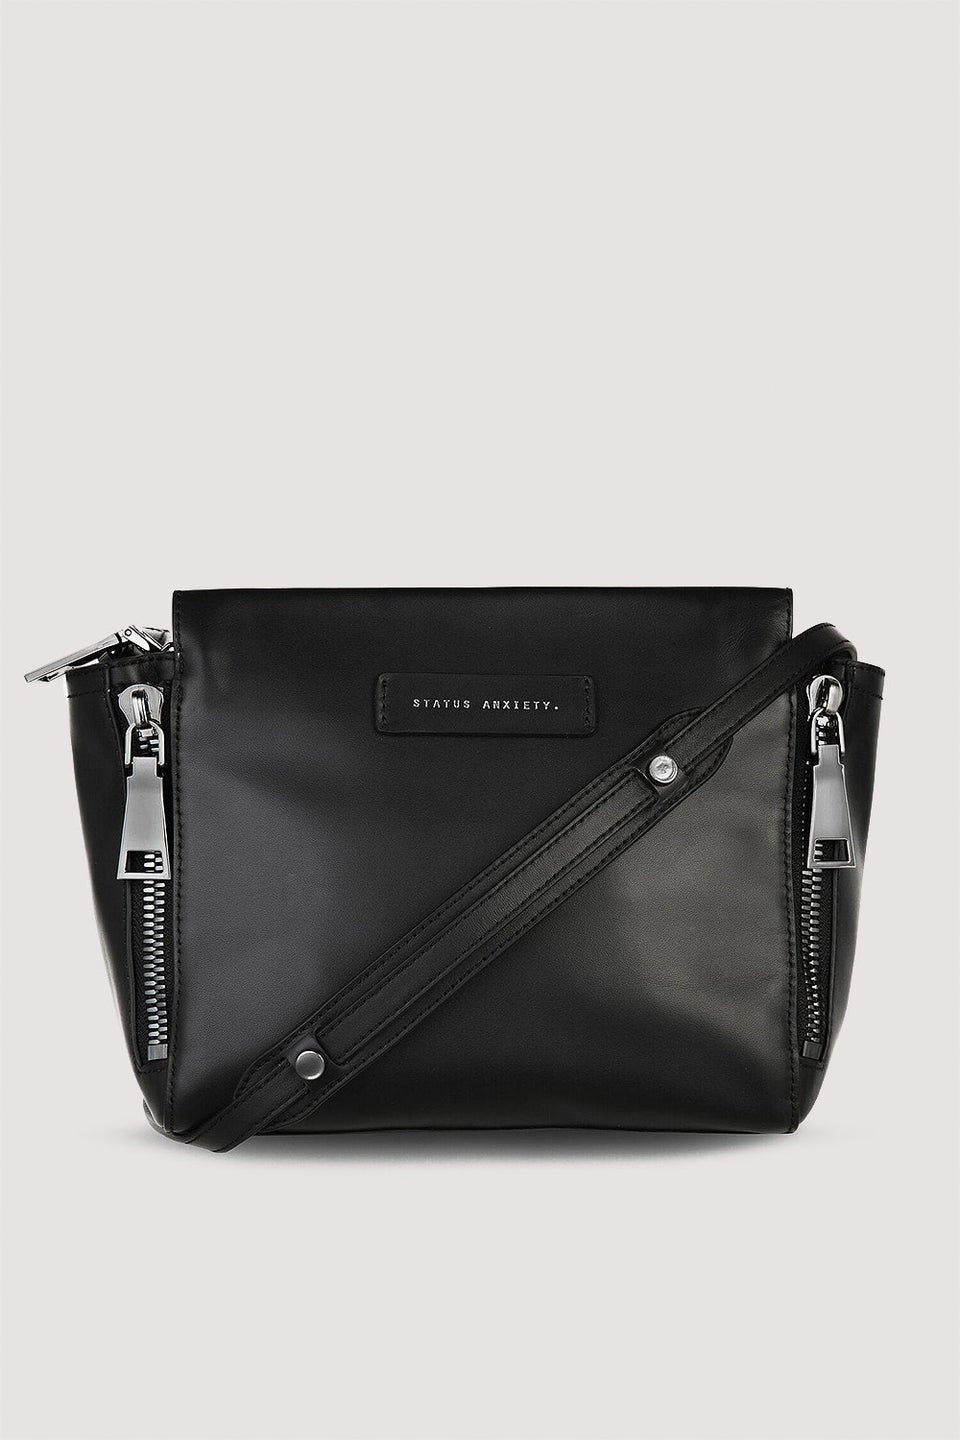 Status The Ascendants Bag Black